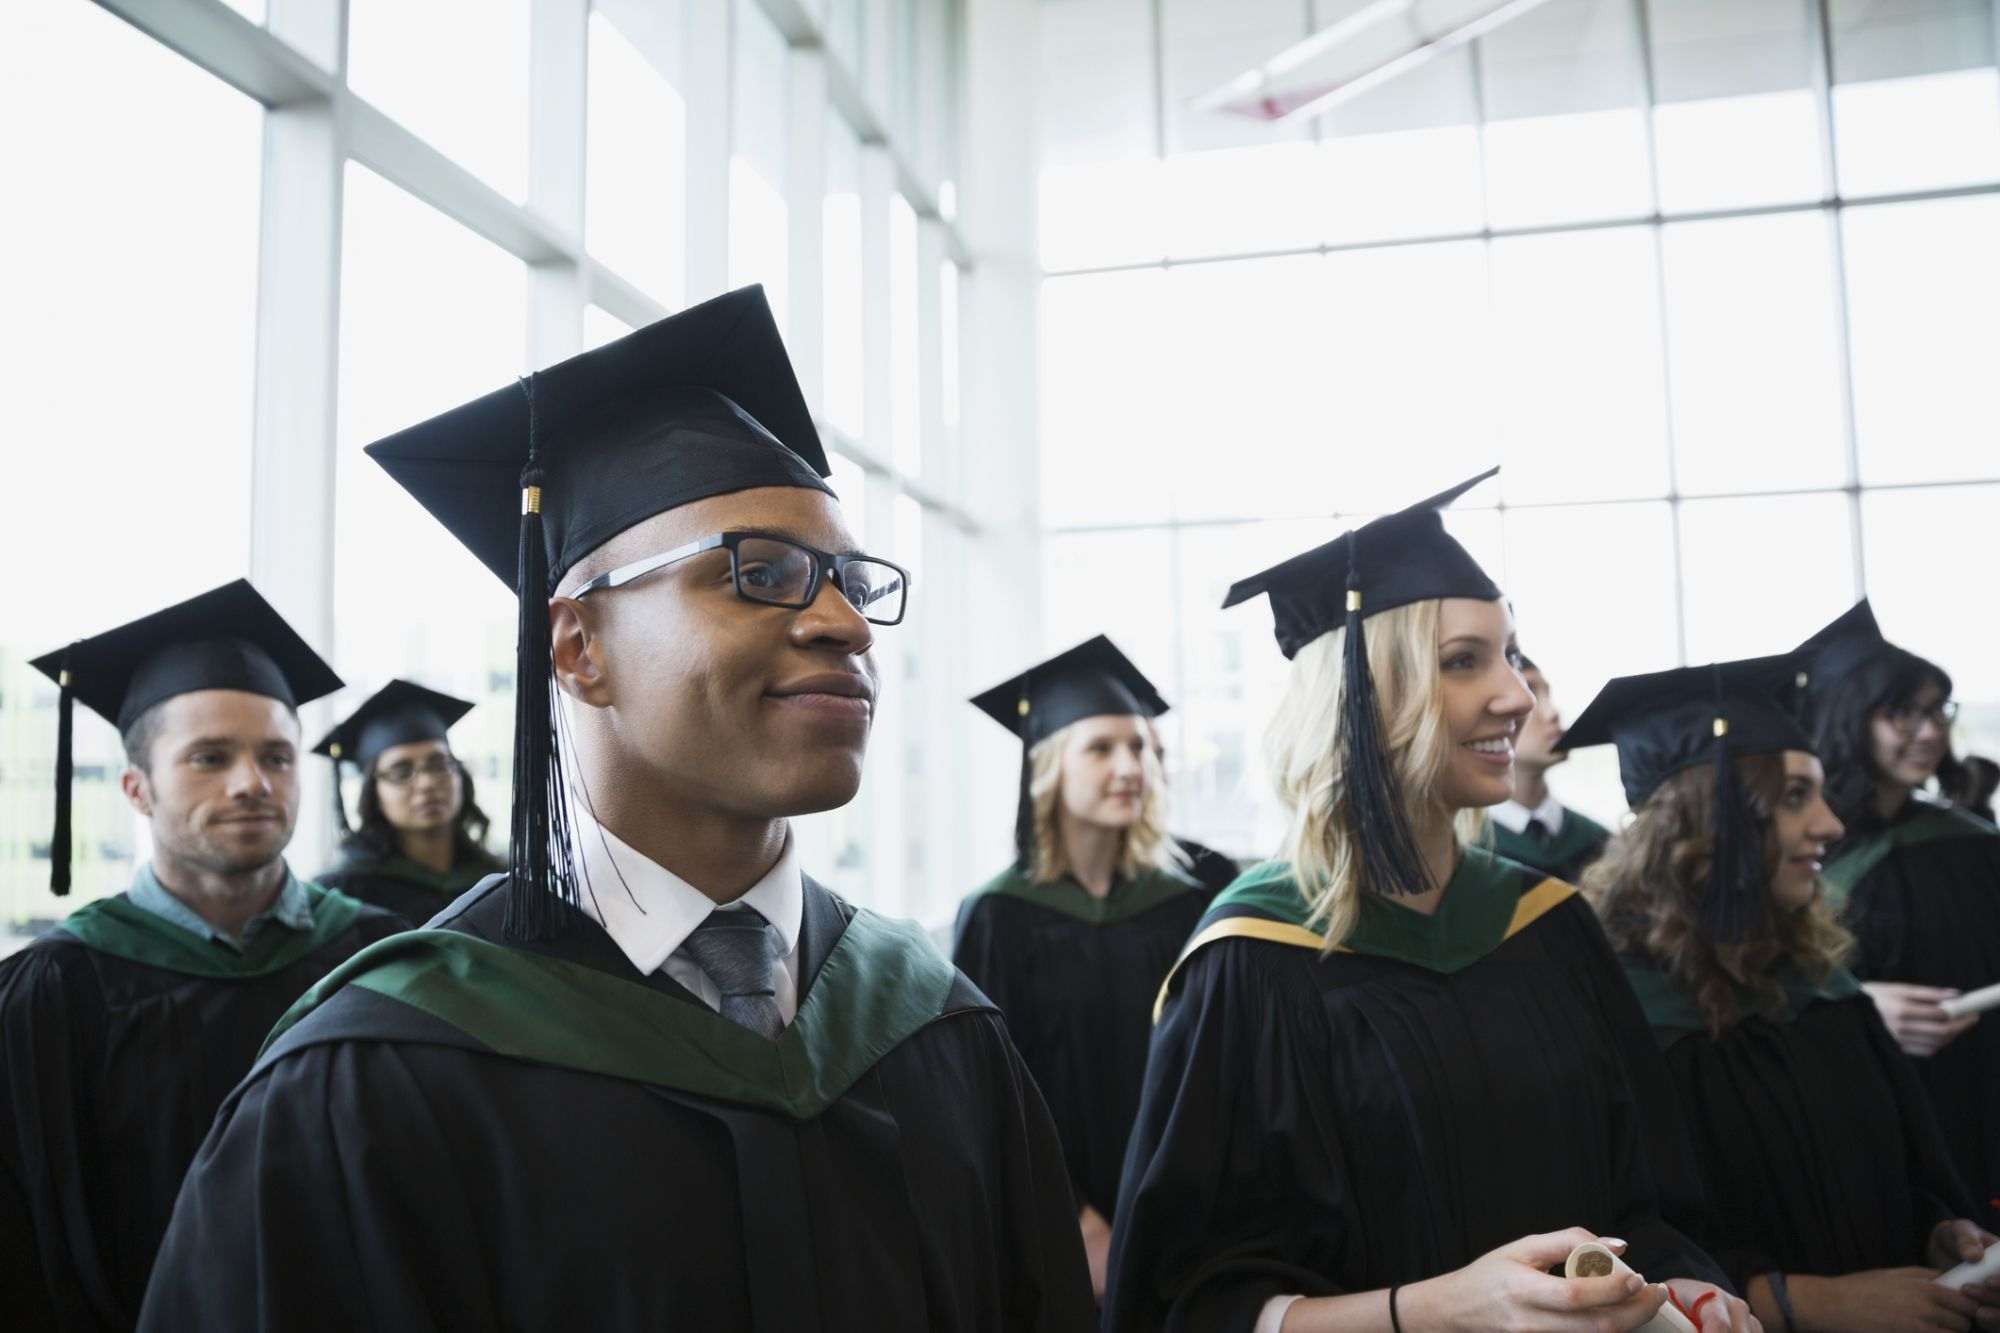 Student Debt Assistance With a (Small) Catch May Be the Hottest New Benefit